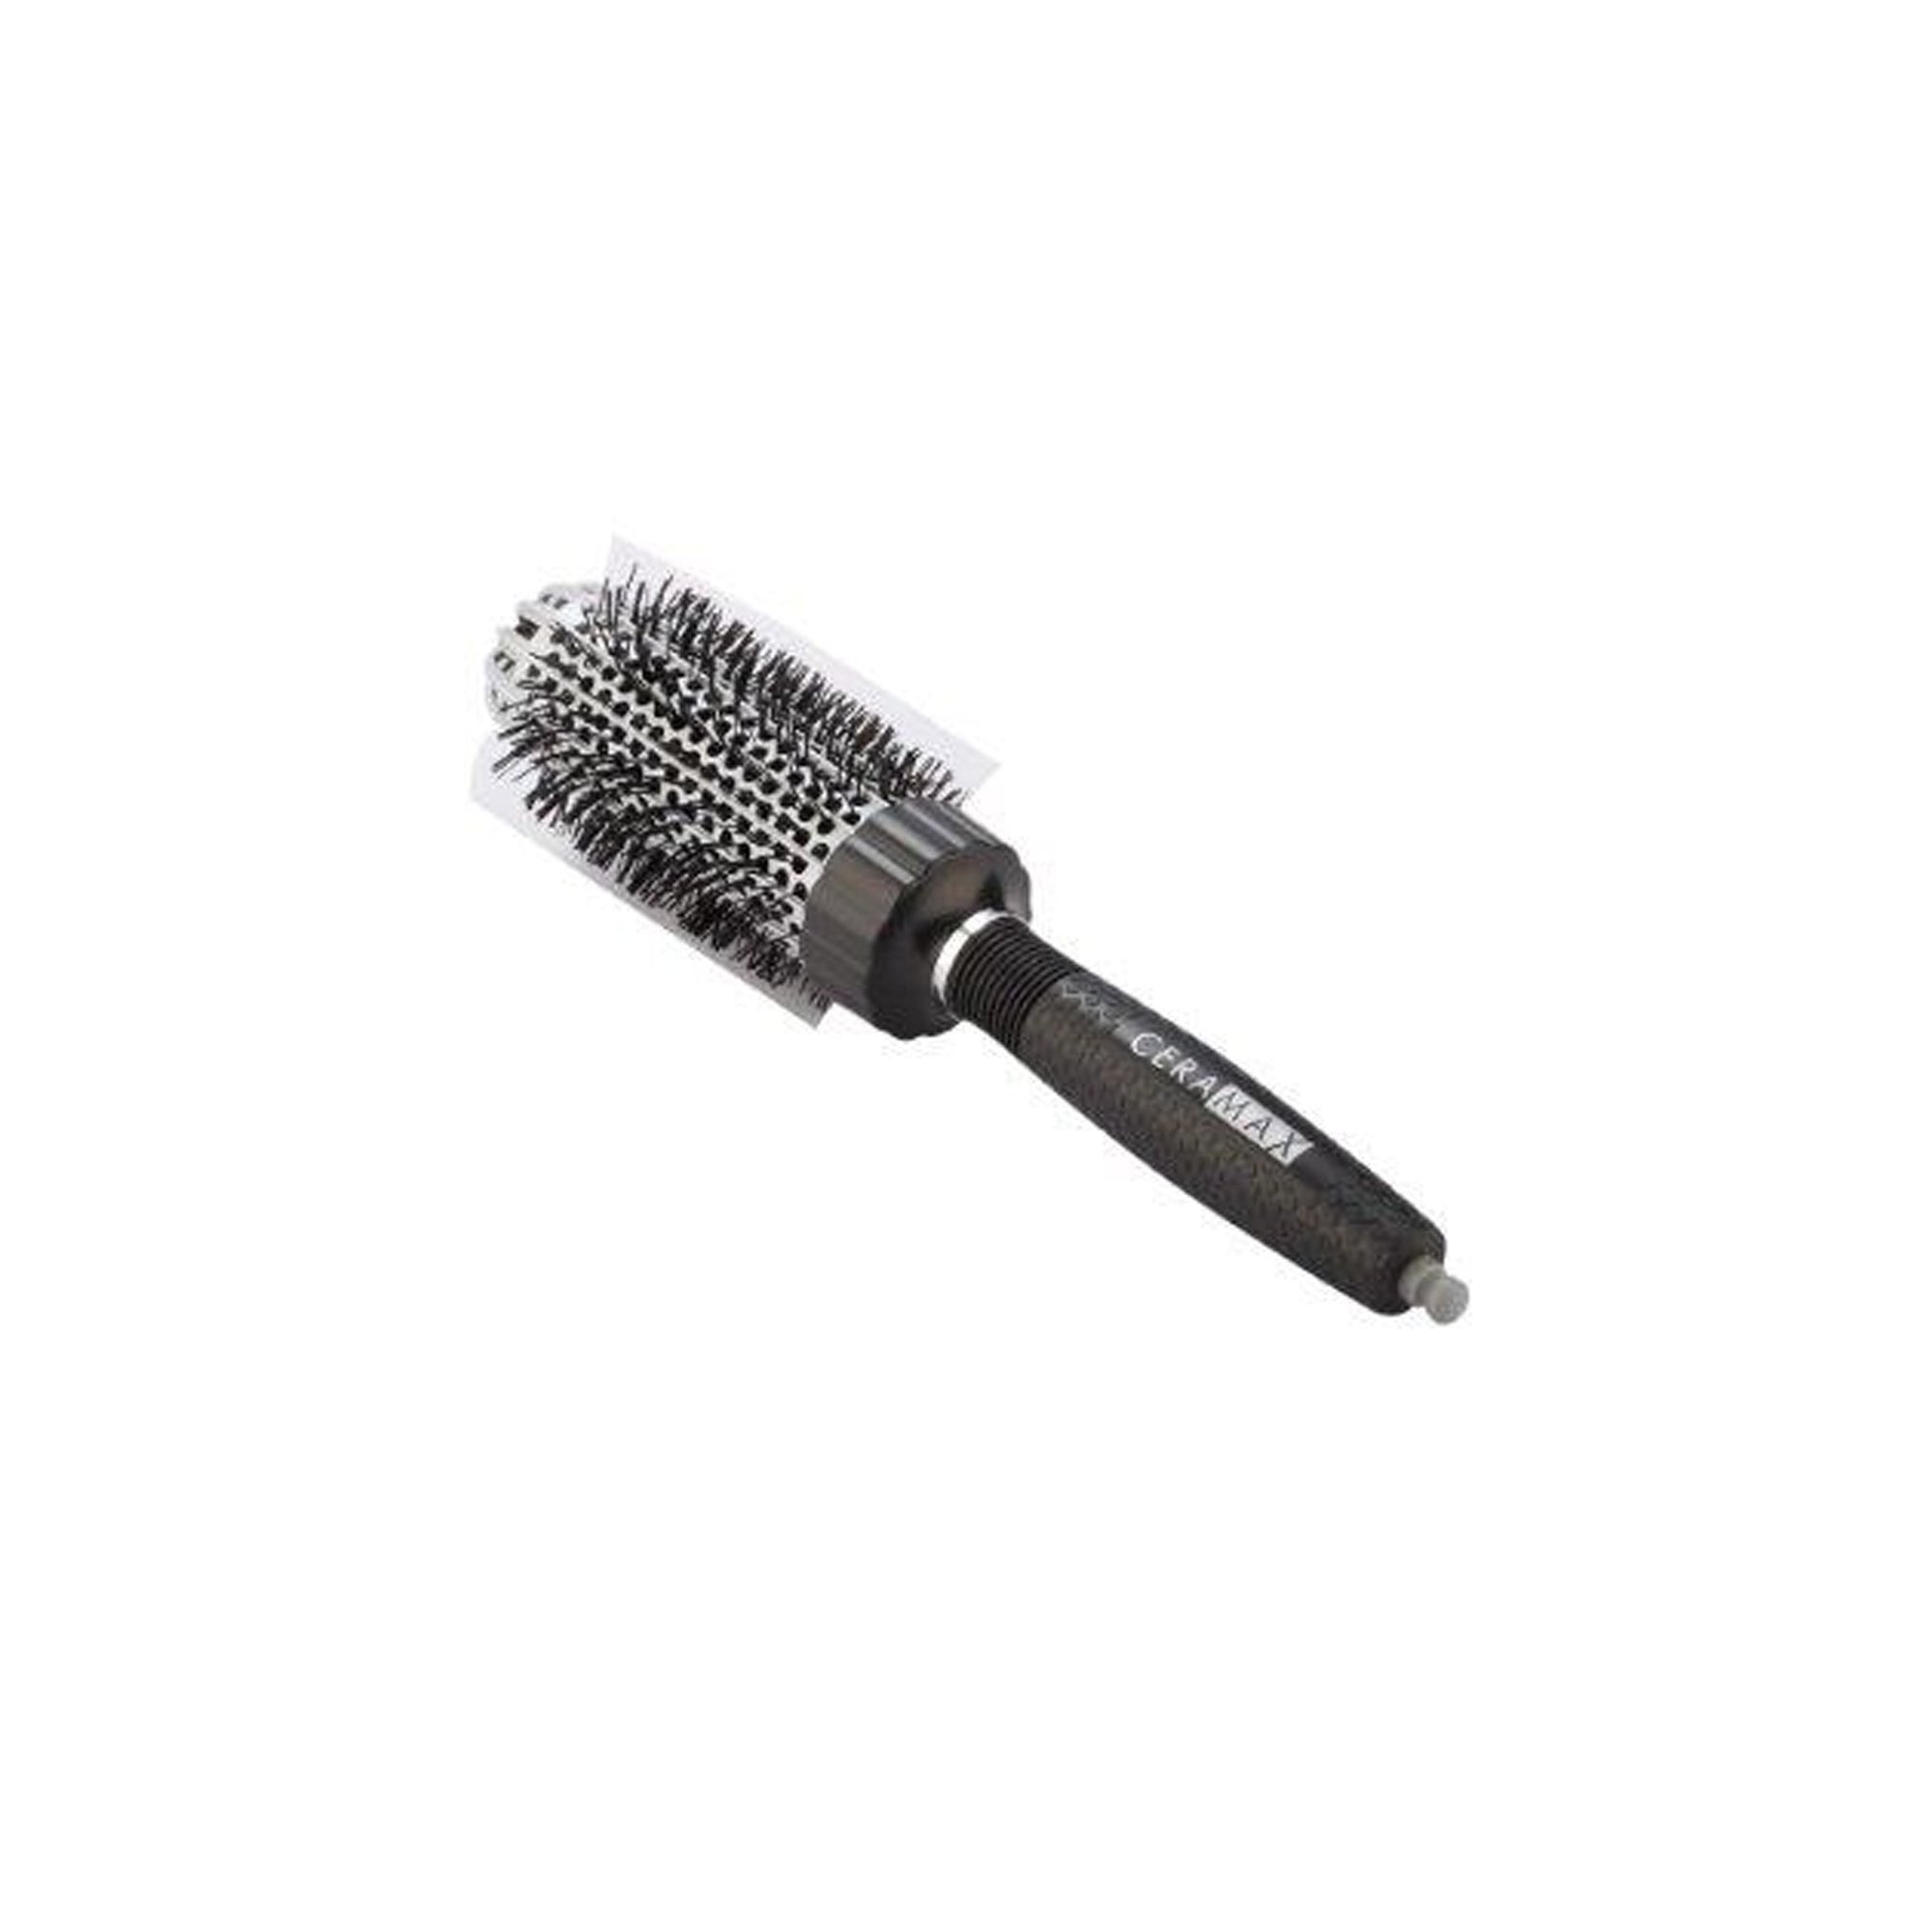 Ceramax Dome Round Brush Large 40mm